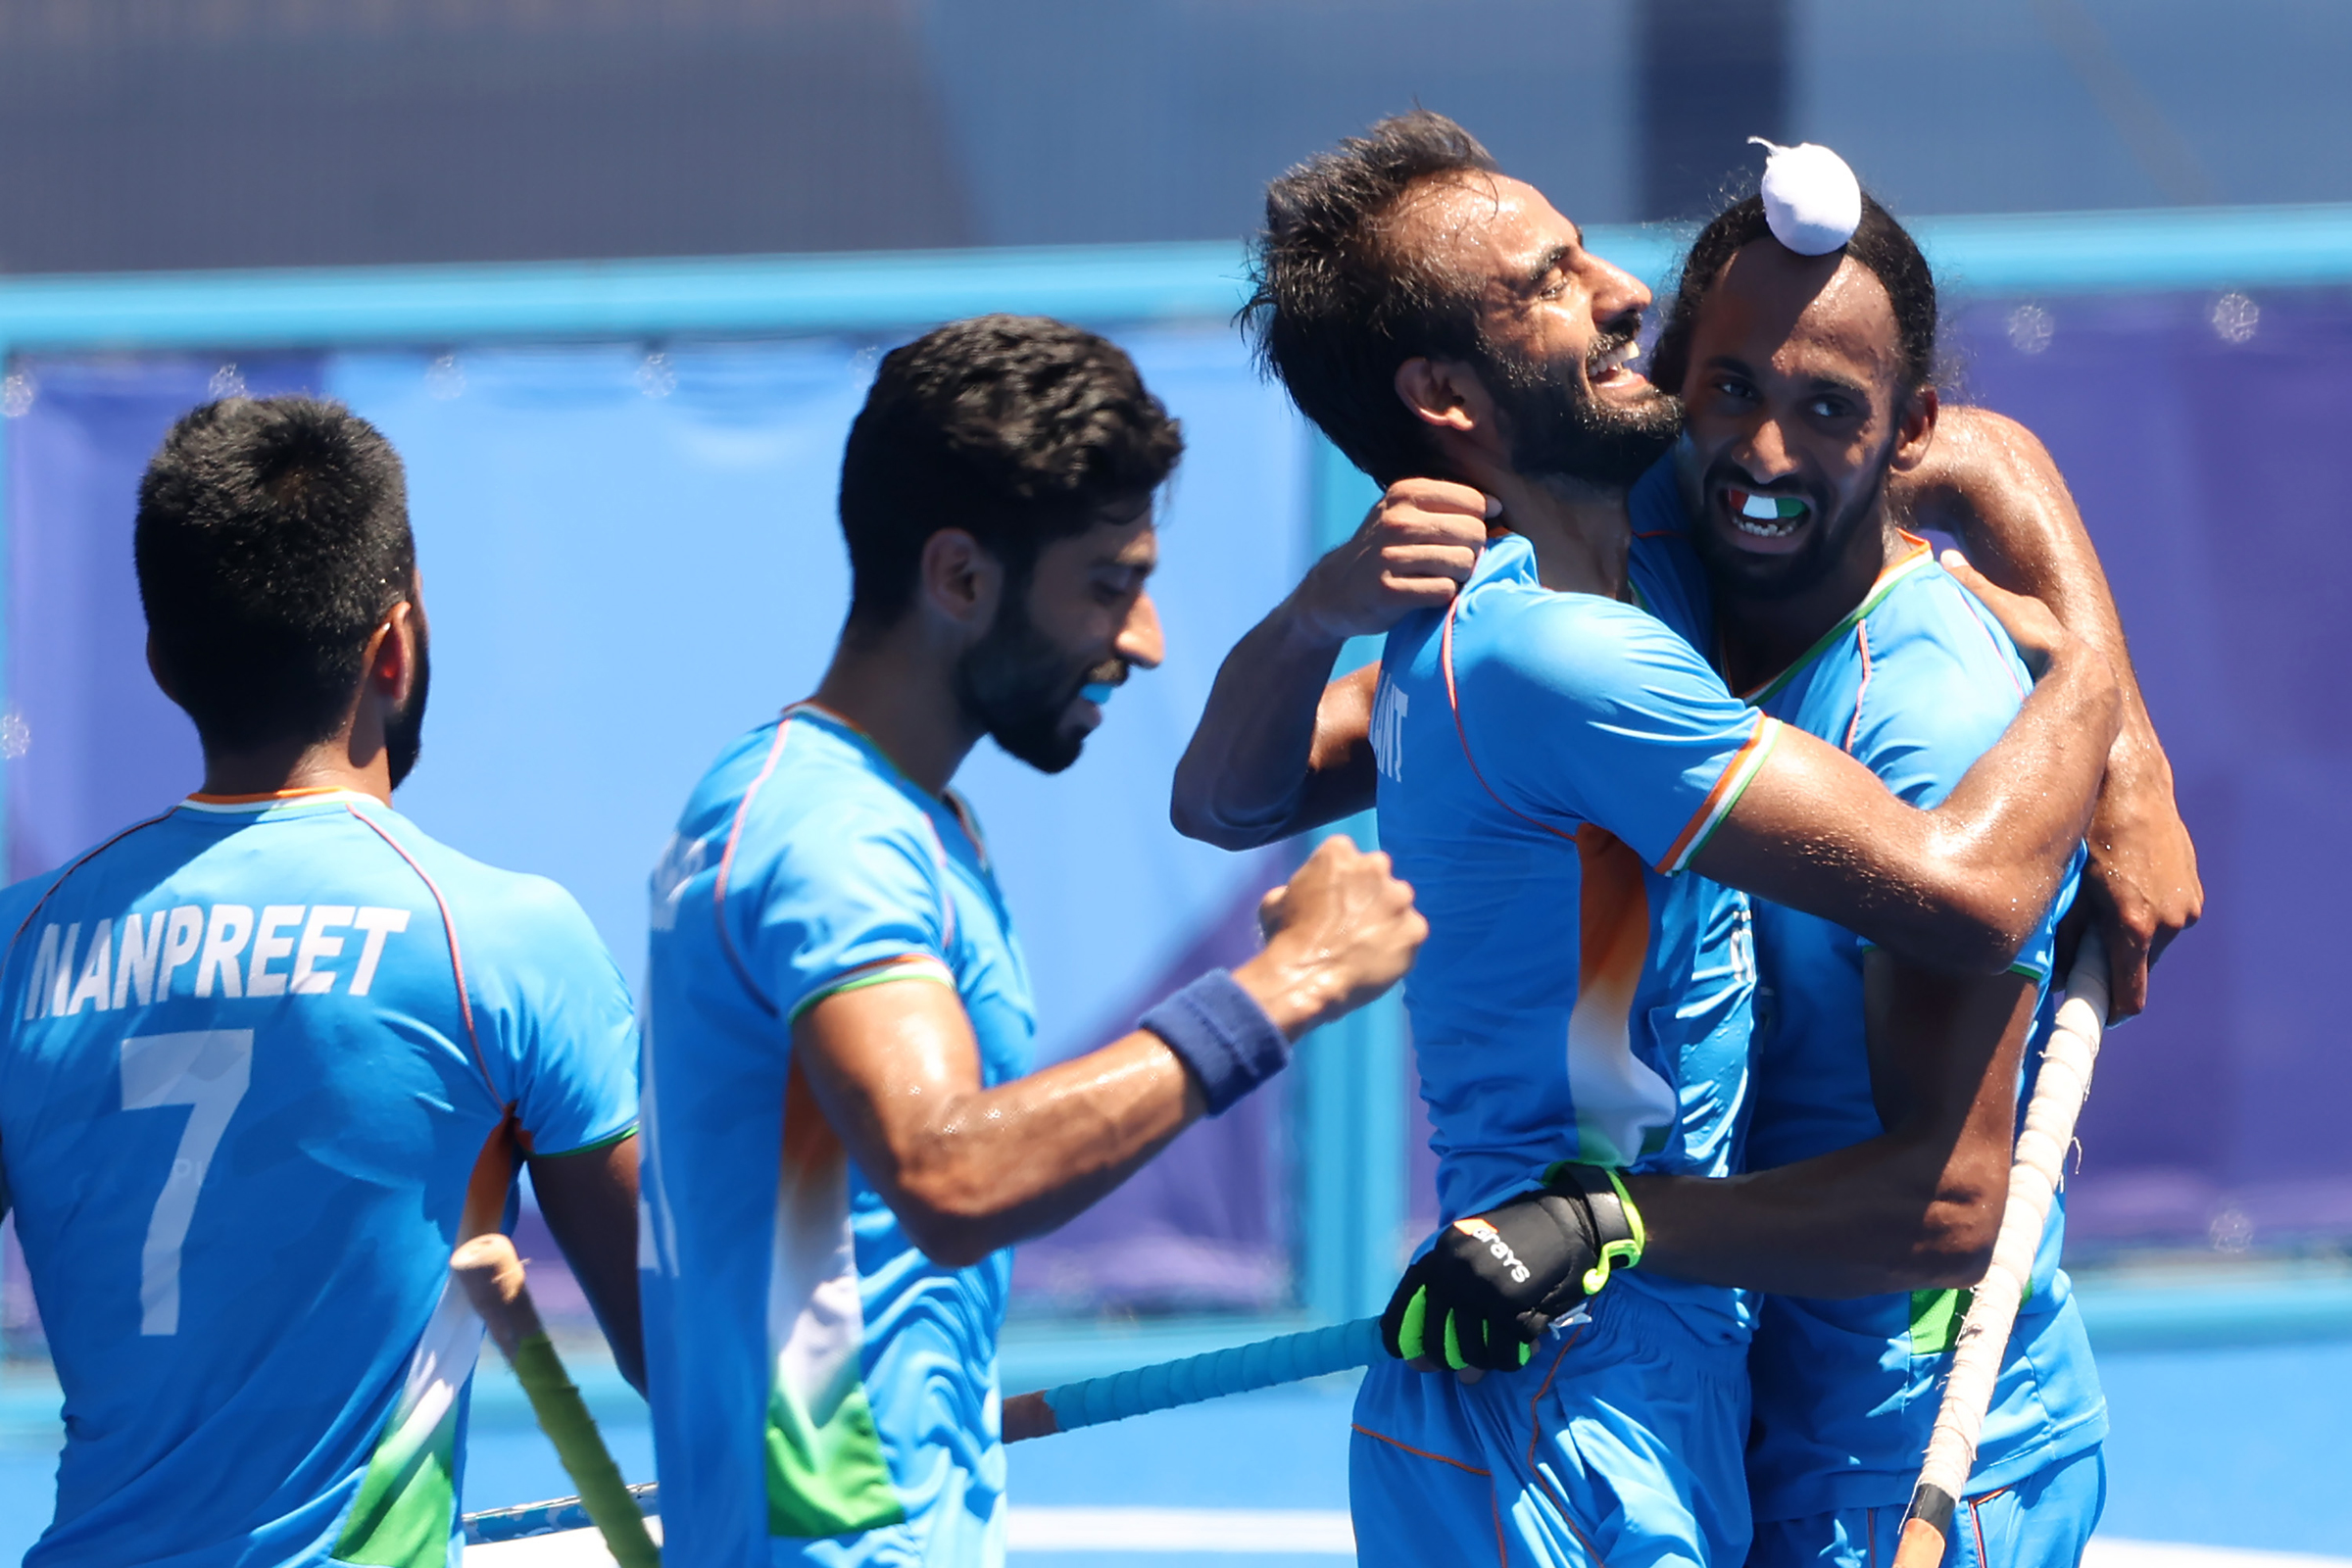 Members of India's hockey team celebrate after scoring a goal against Germany on Thursday, August 5.